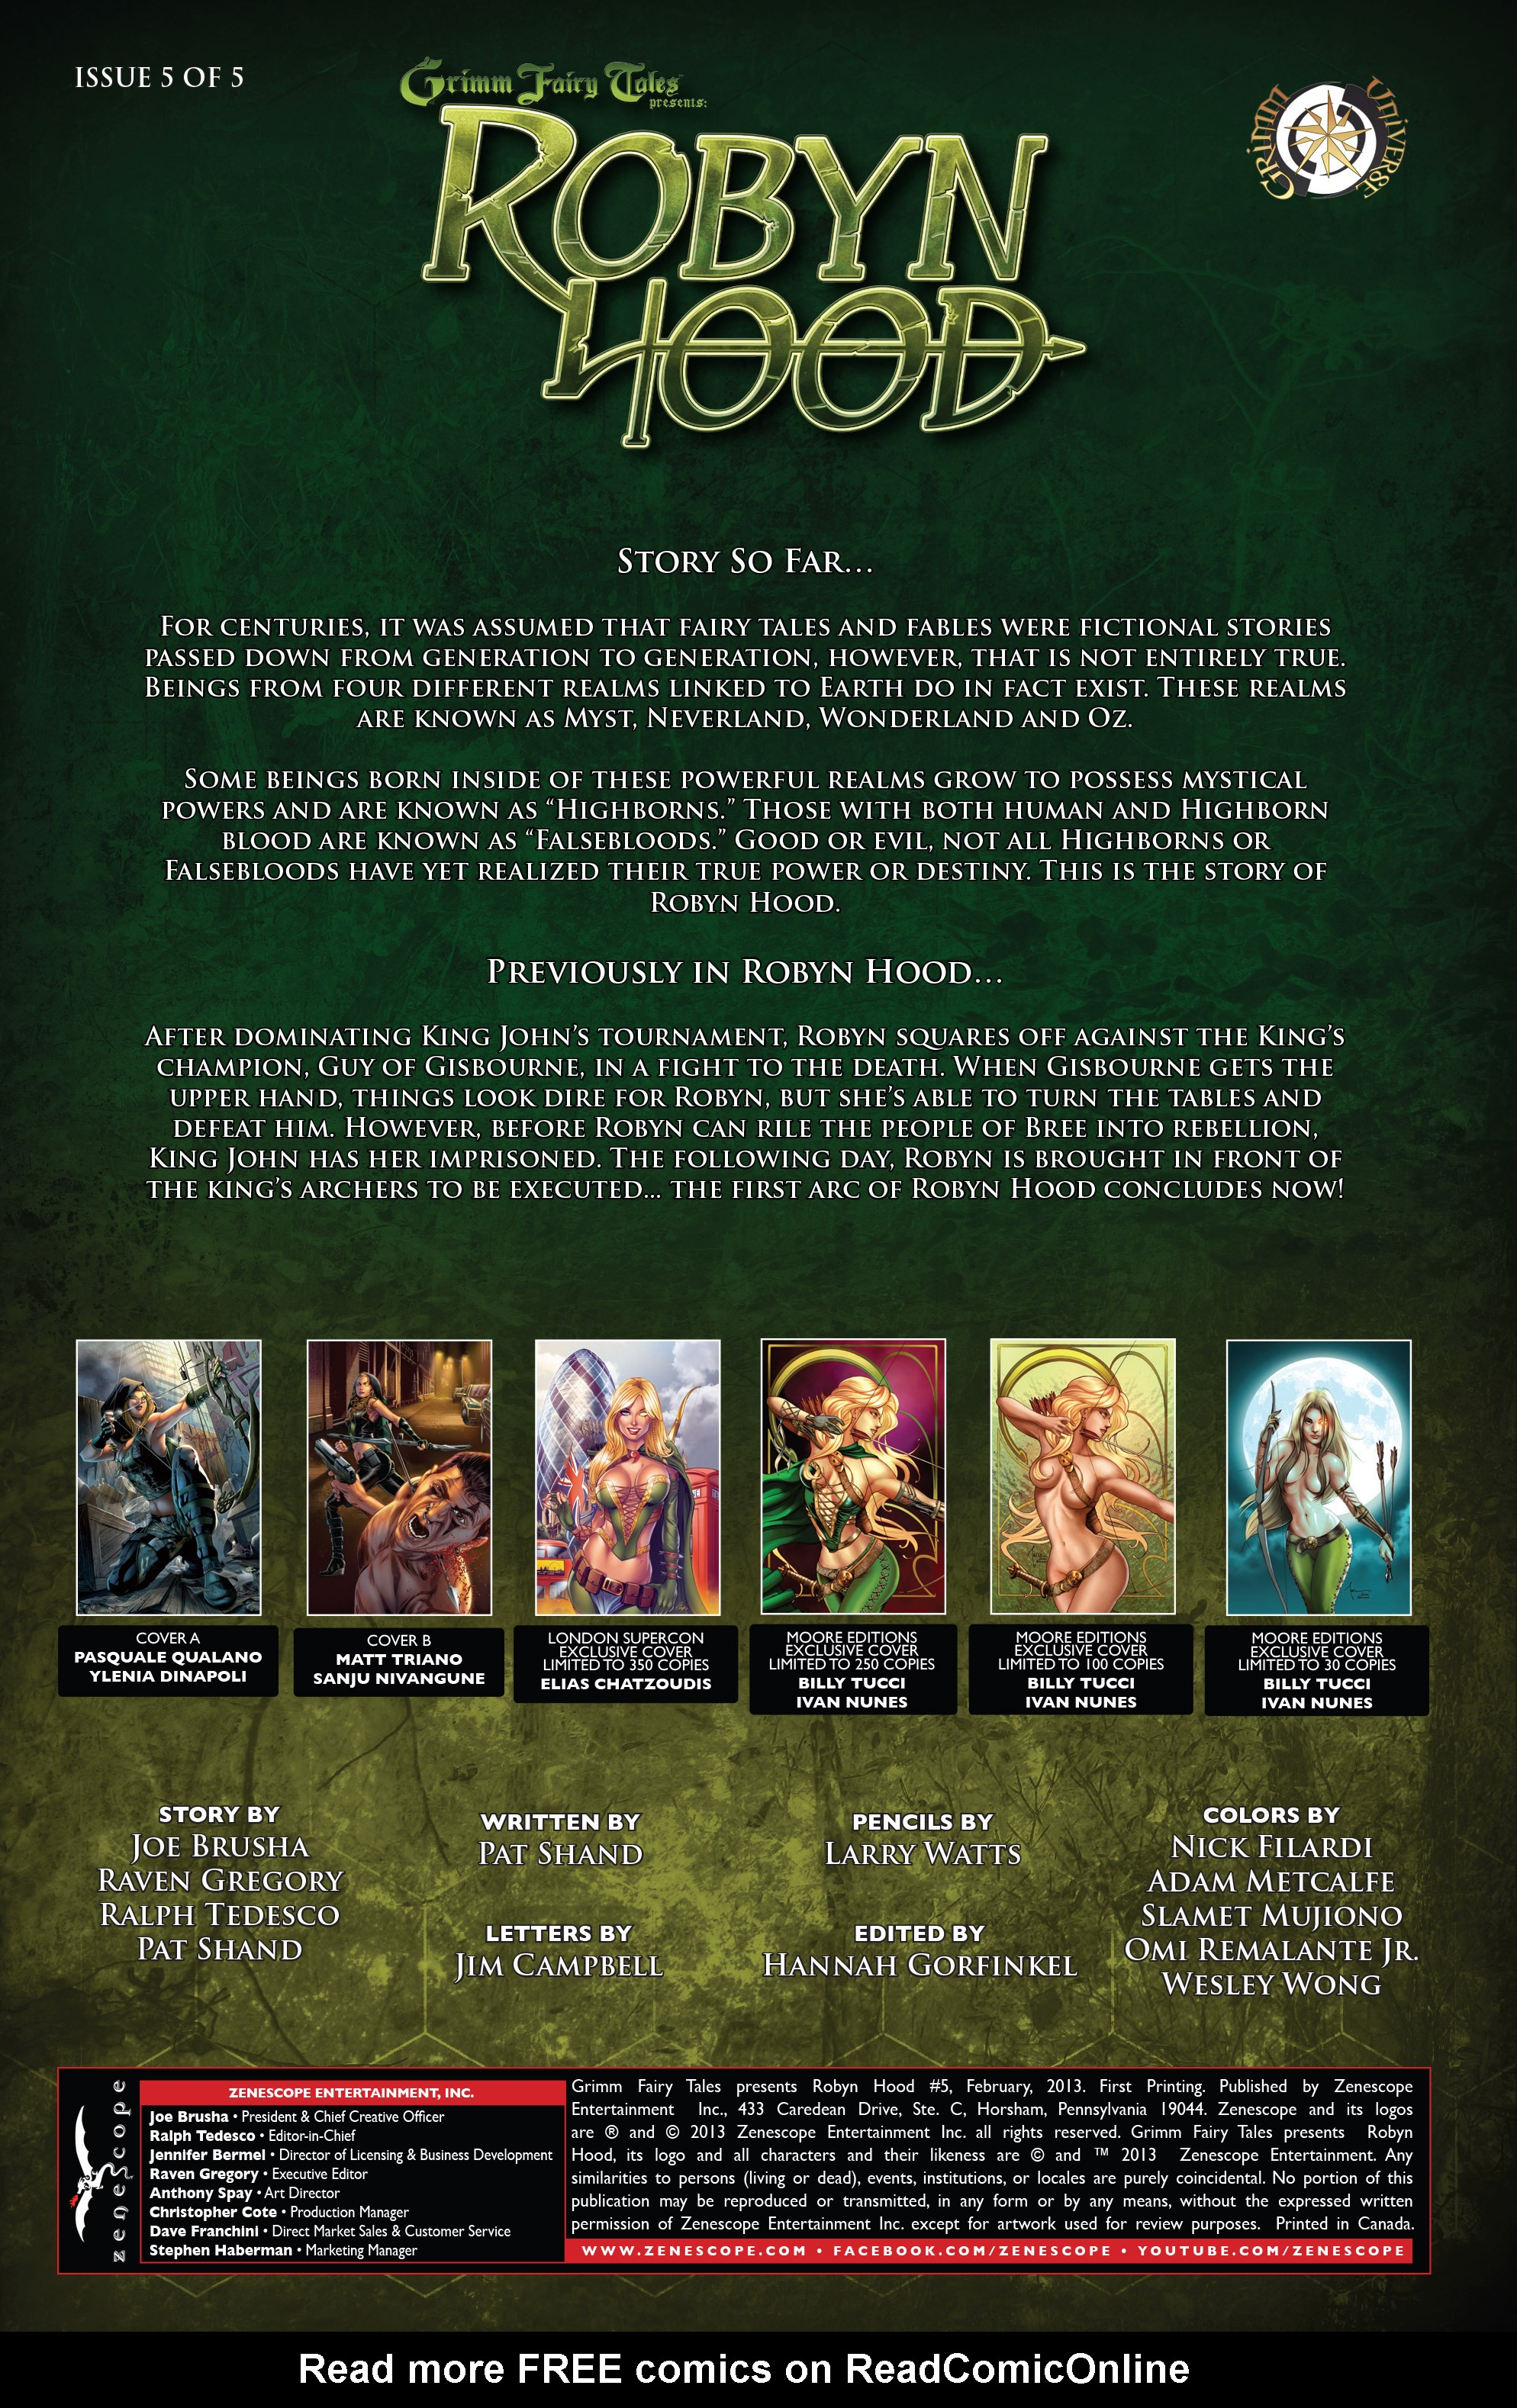 Read online Grimm Fairy Tales presents Robyn Hood (2012) comic -  Issue #5 - 2